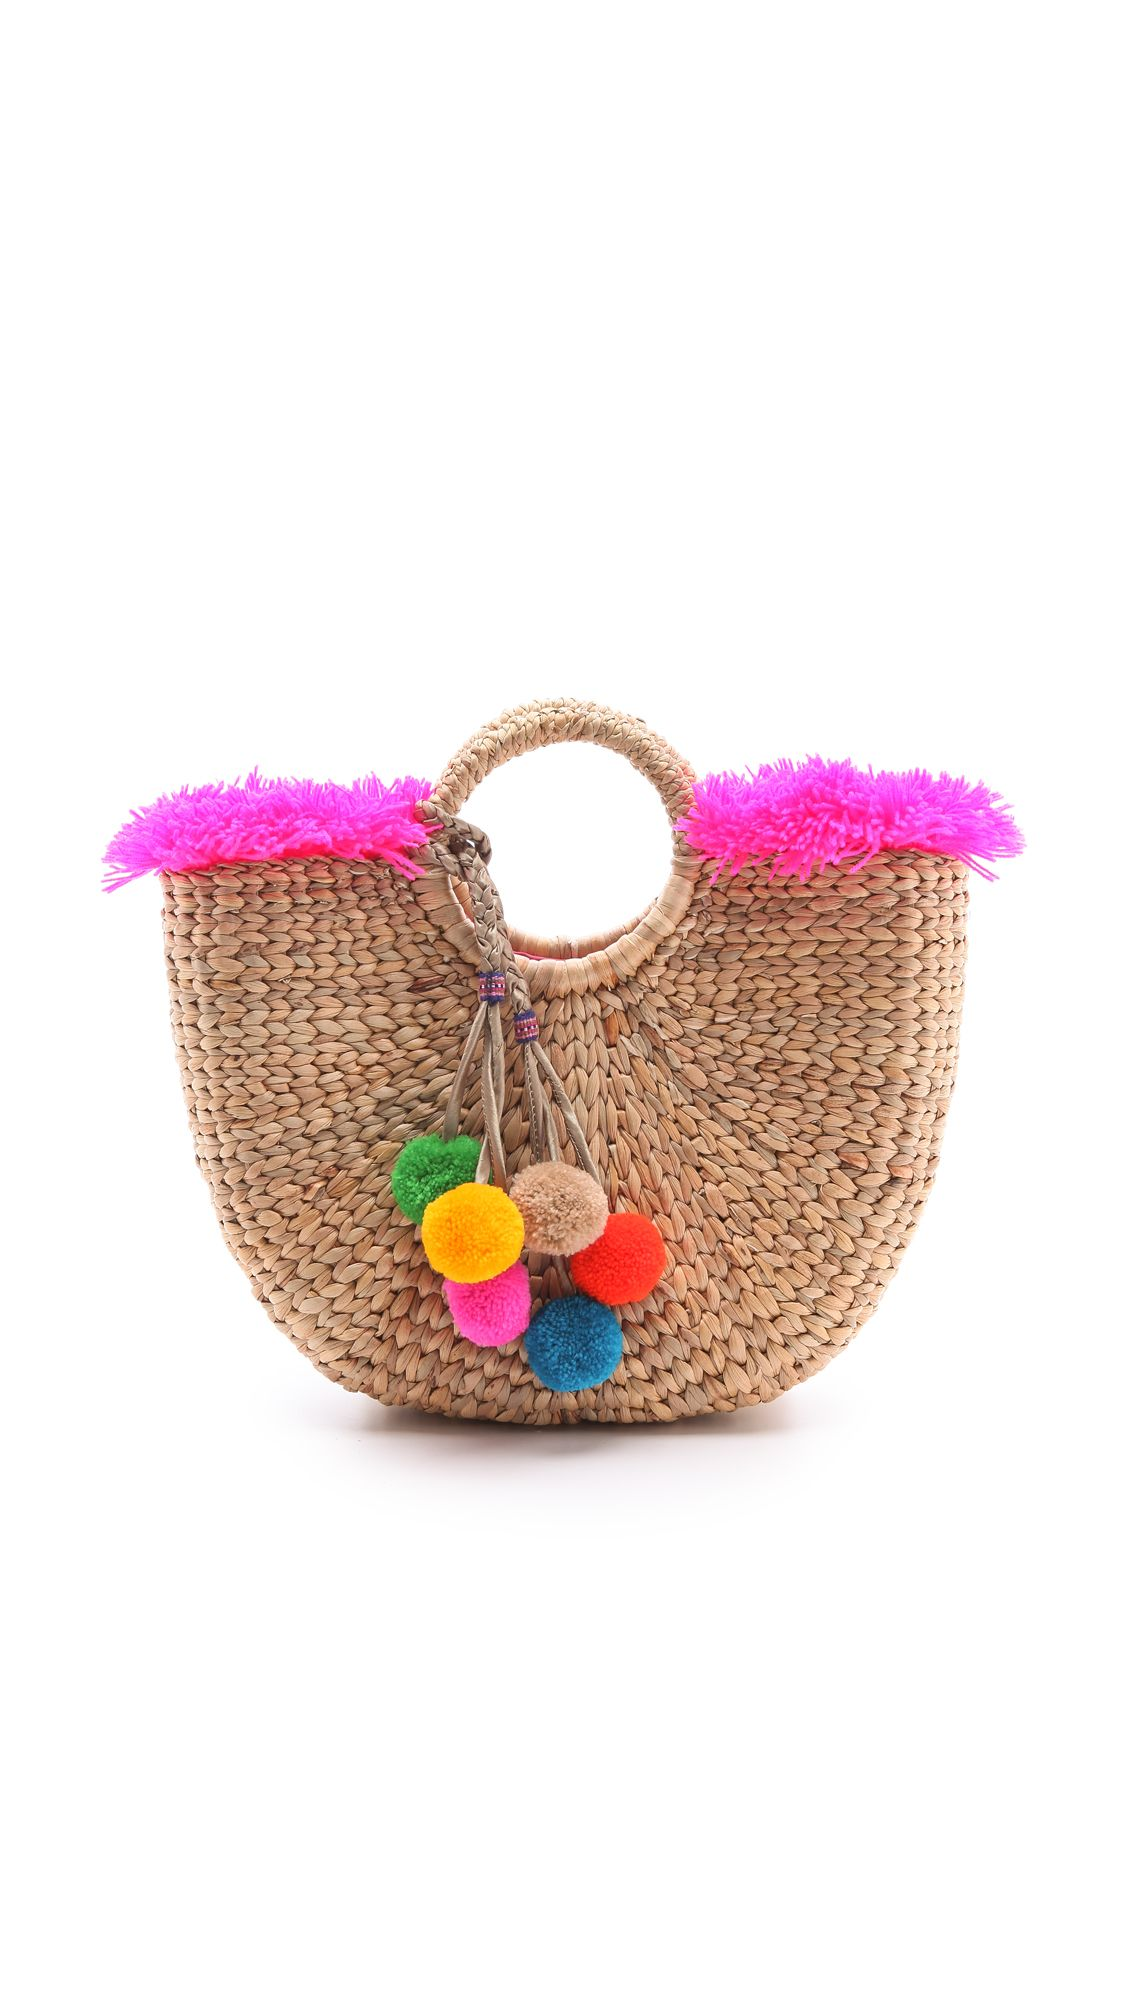 This Structured Straw Handbag Is Styled With Cheerful Pom Poms And Bright Yarn Fringe Lined Weight Imported Thailand Measurements Height Length